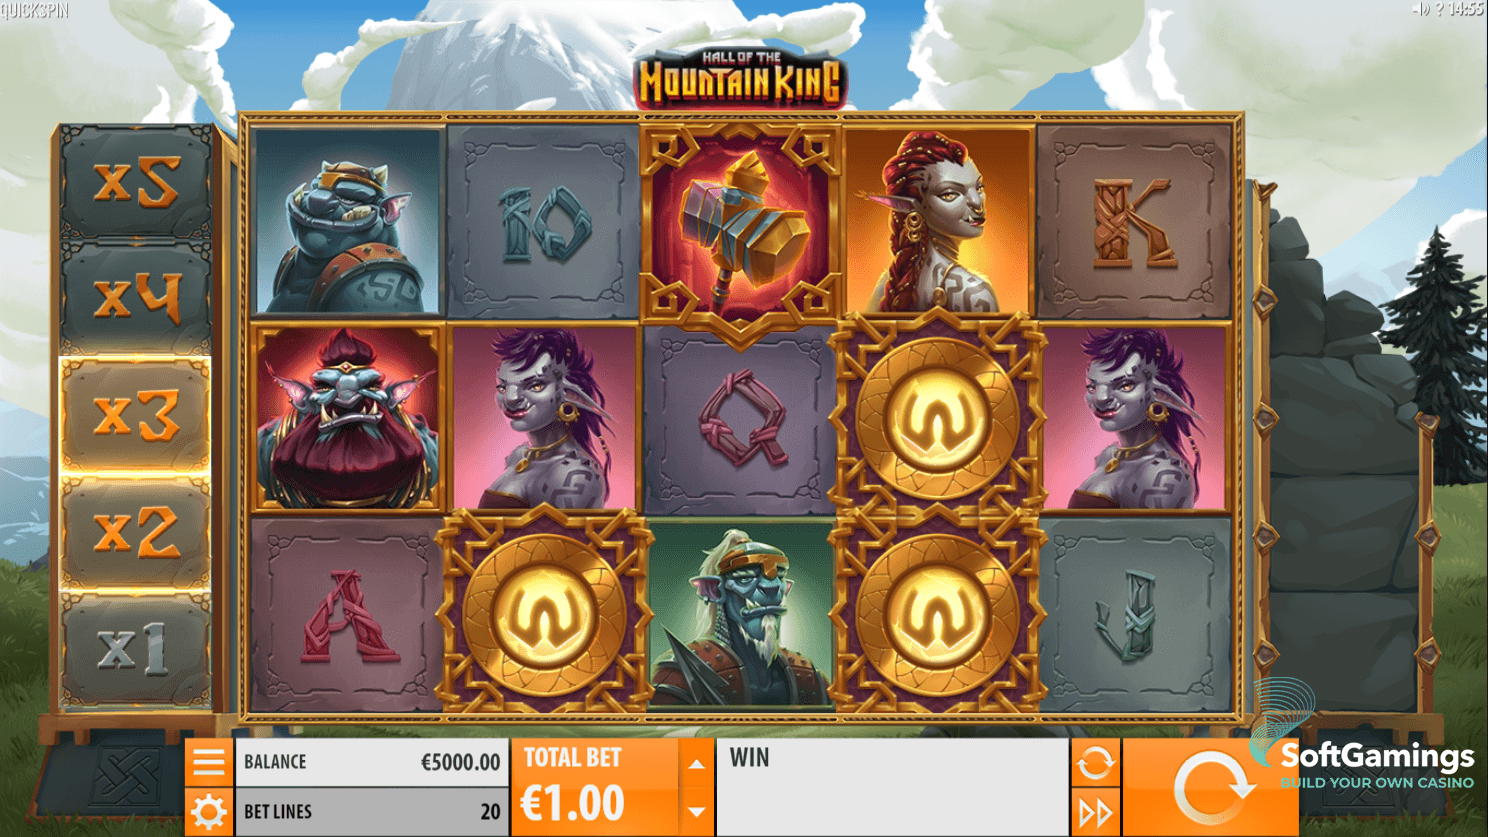 Hall of the Mountain King Slot Machine - How to Play